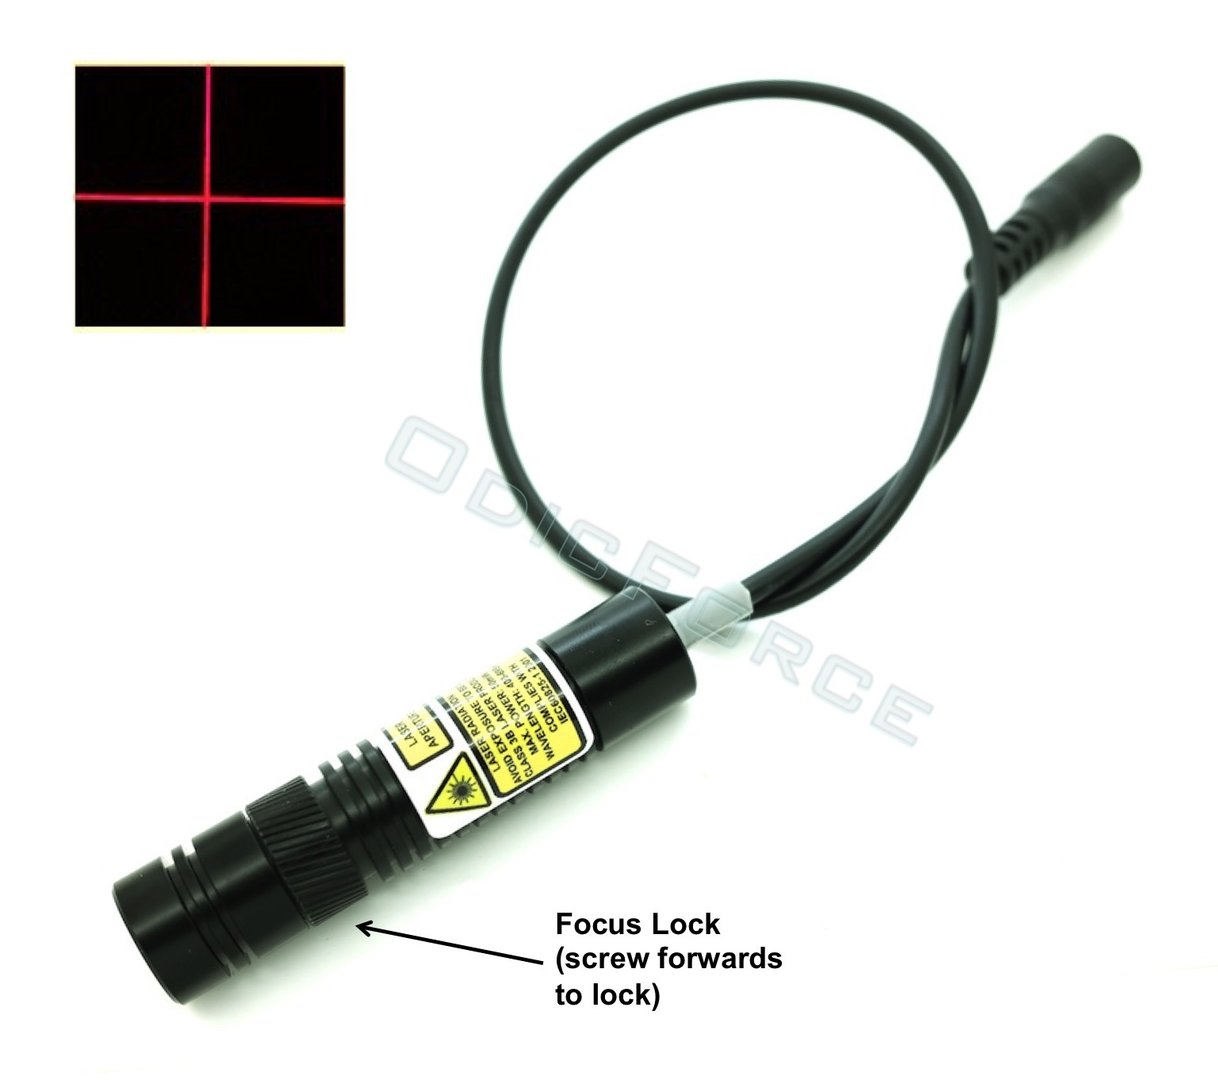 200mW Red Cross-Line Laser Module with Adjustable Locking Focus (16mm, 3-5V)